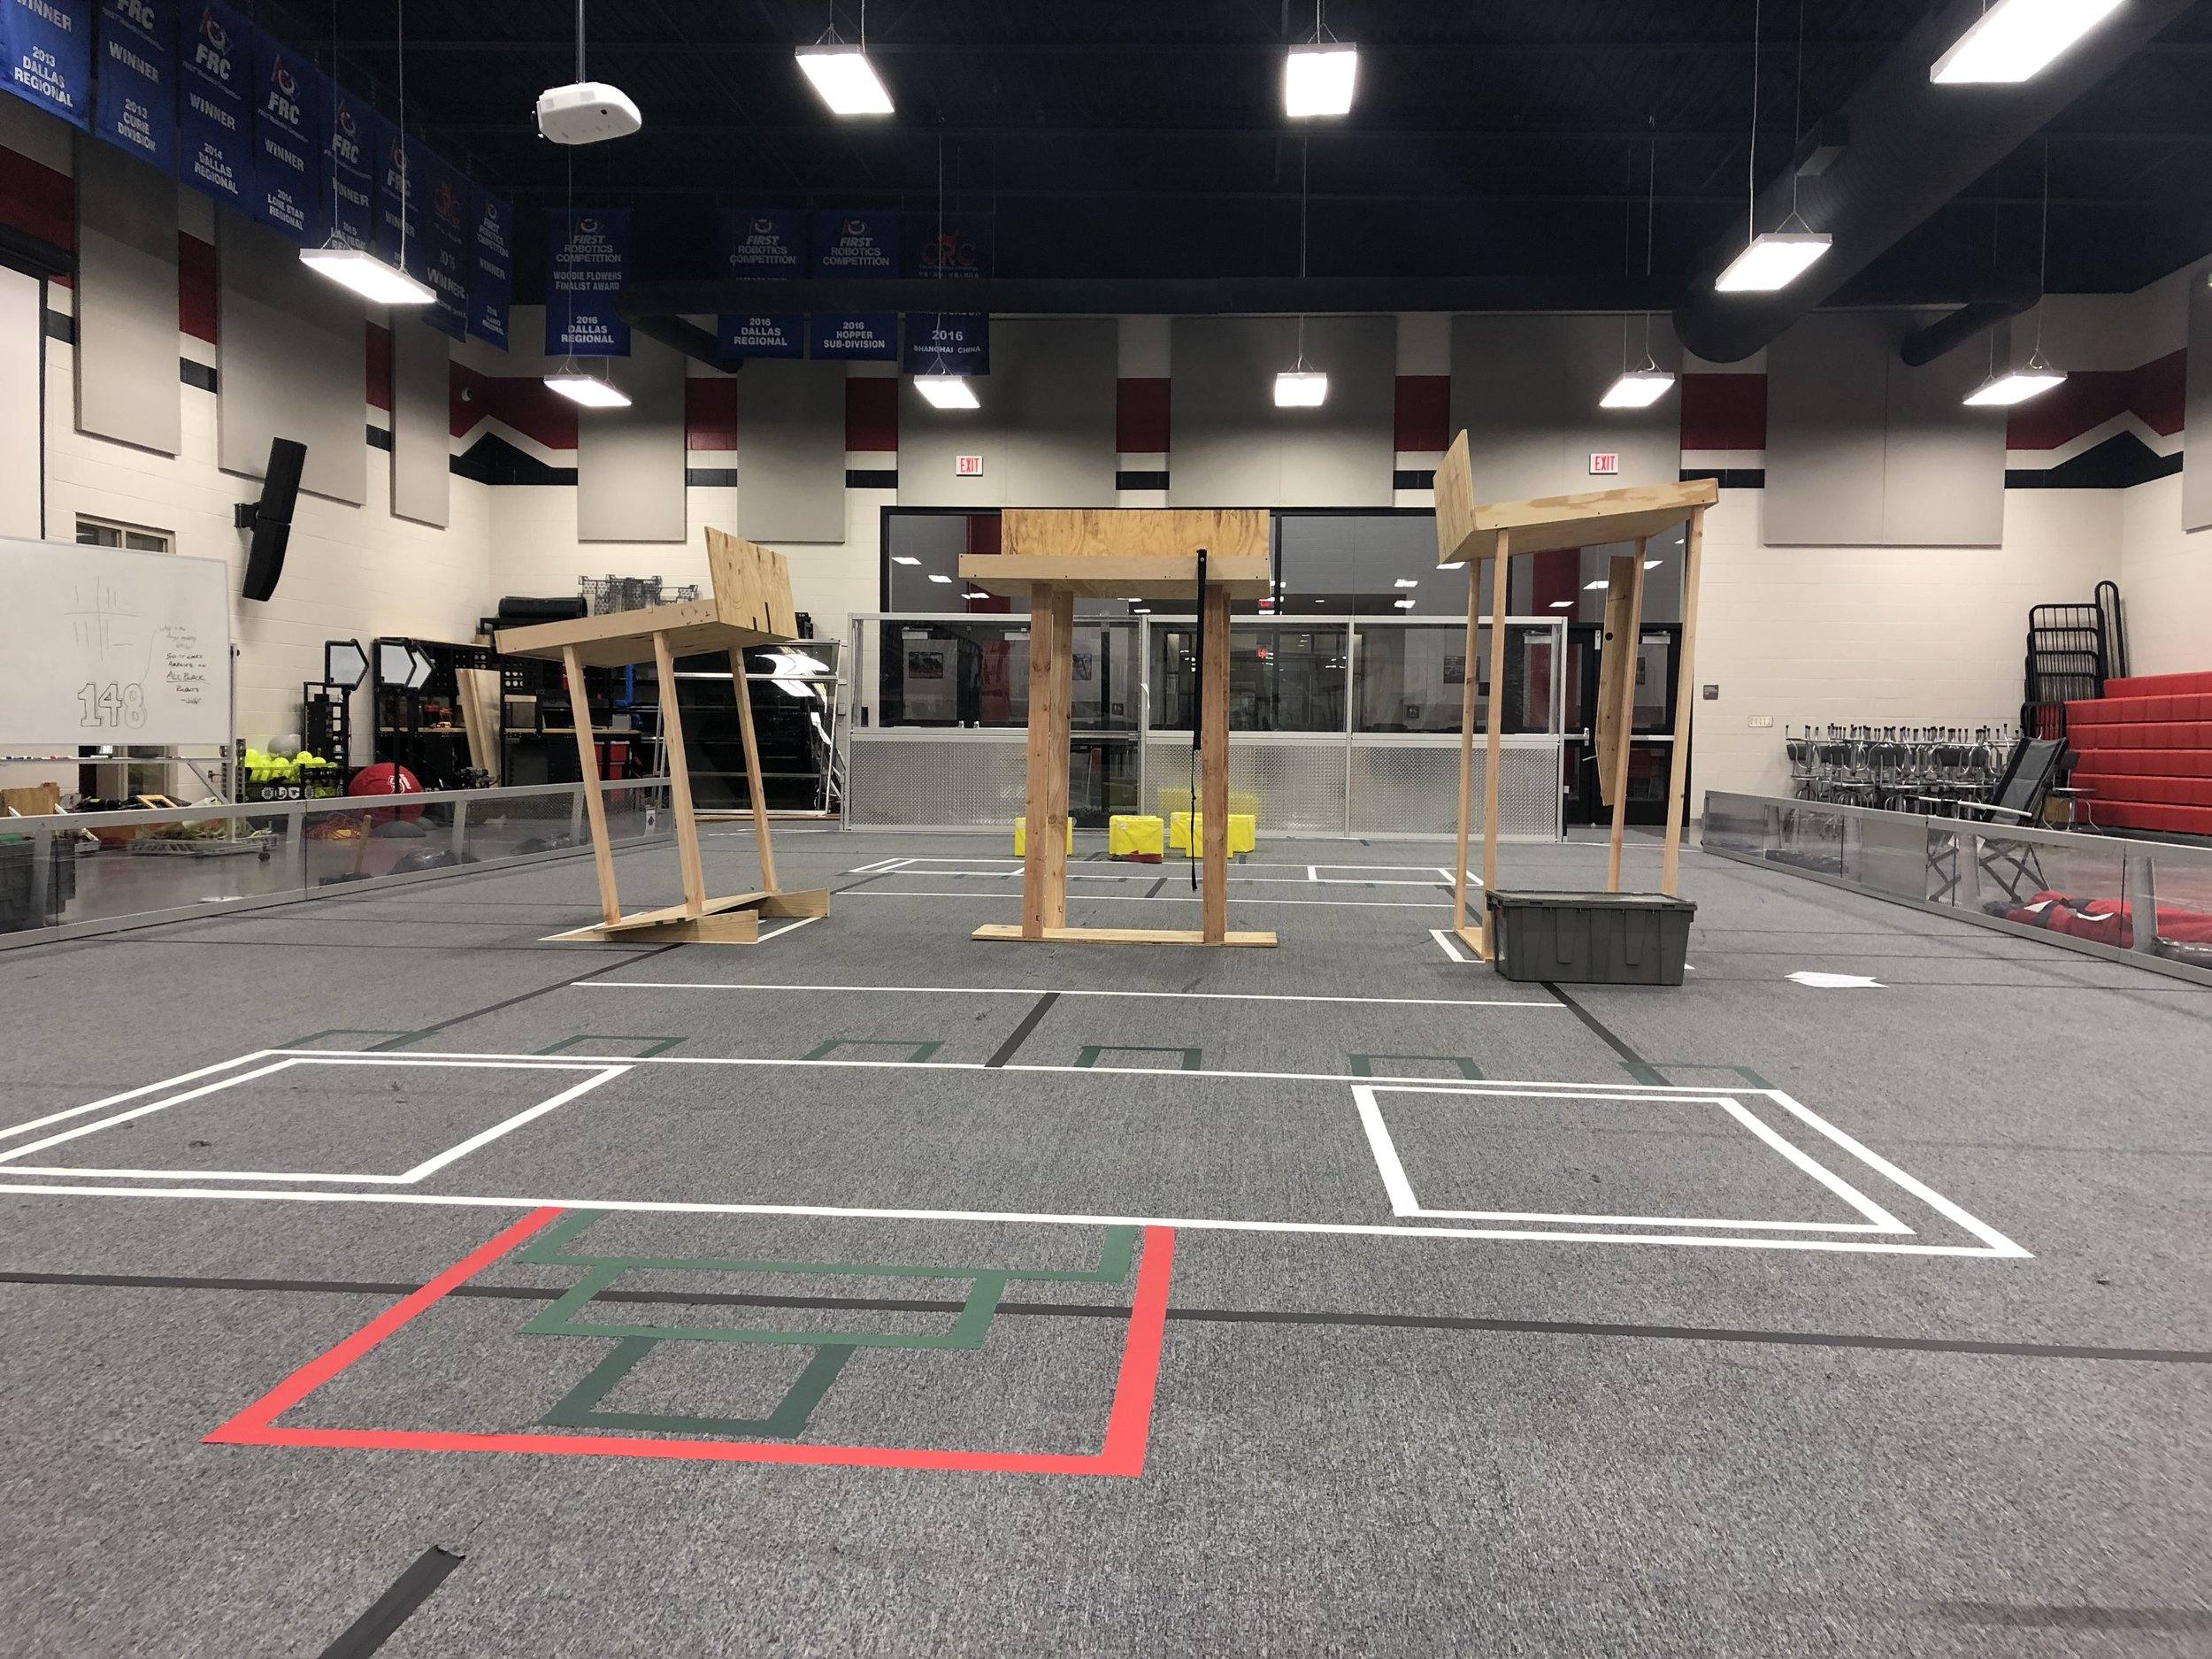 Our prototype field setup until the Robowrangler arena gets its final elements.